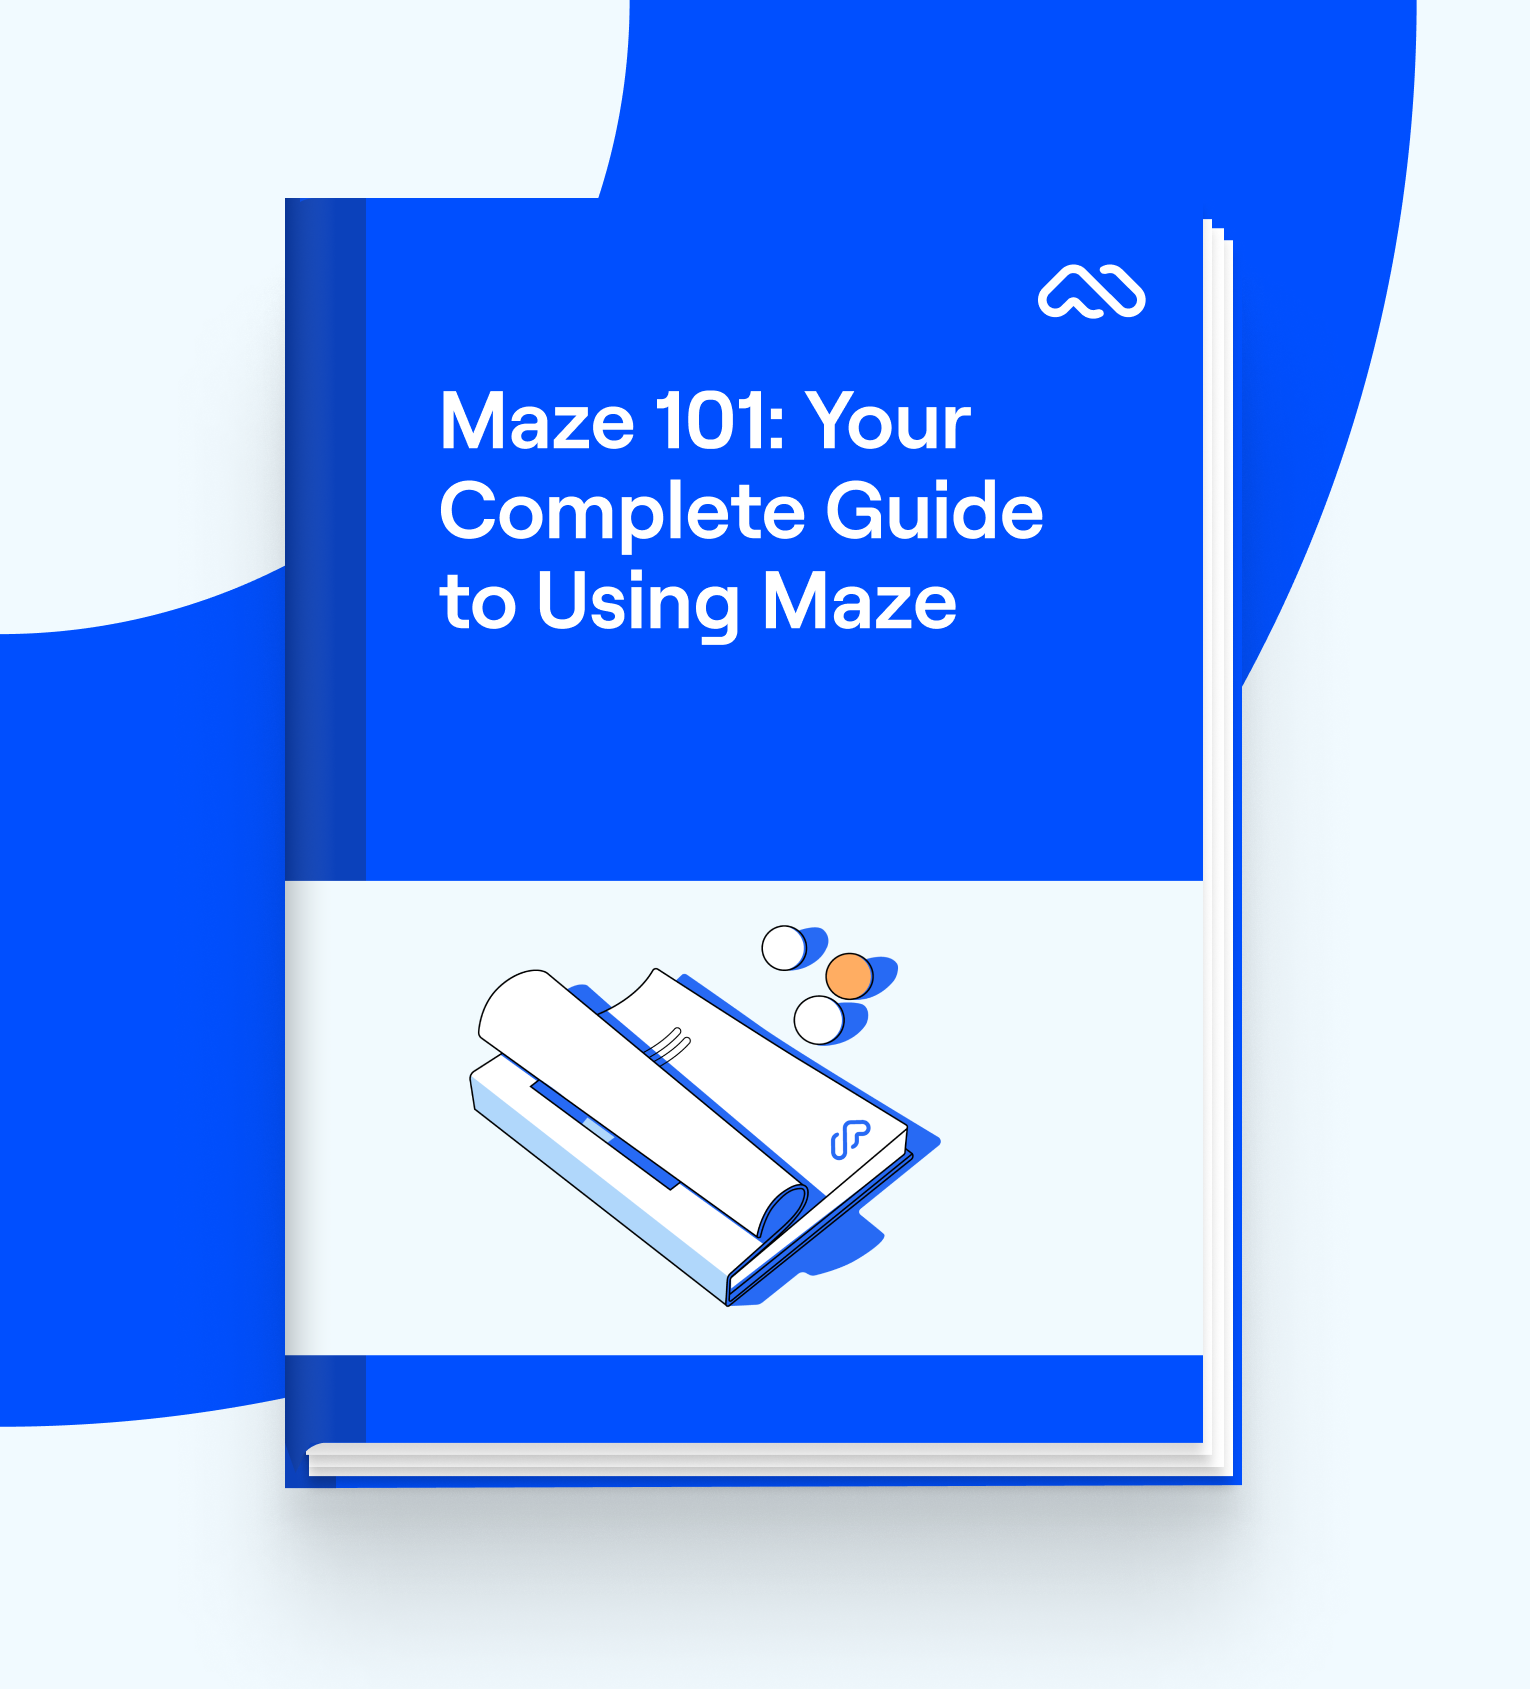 The Complete Guide to Using Maze